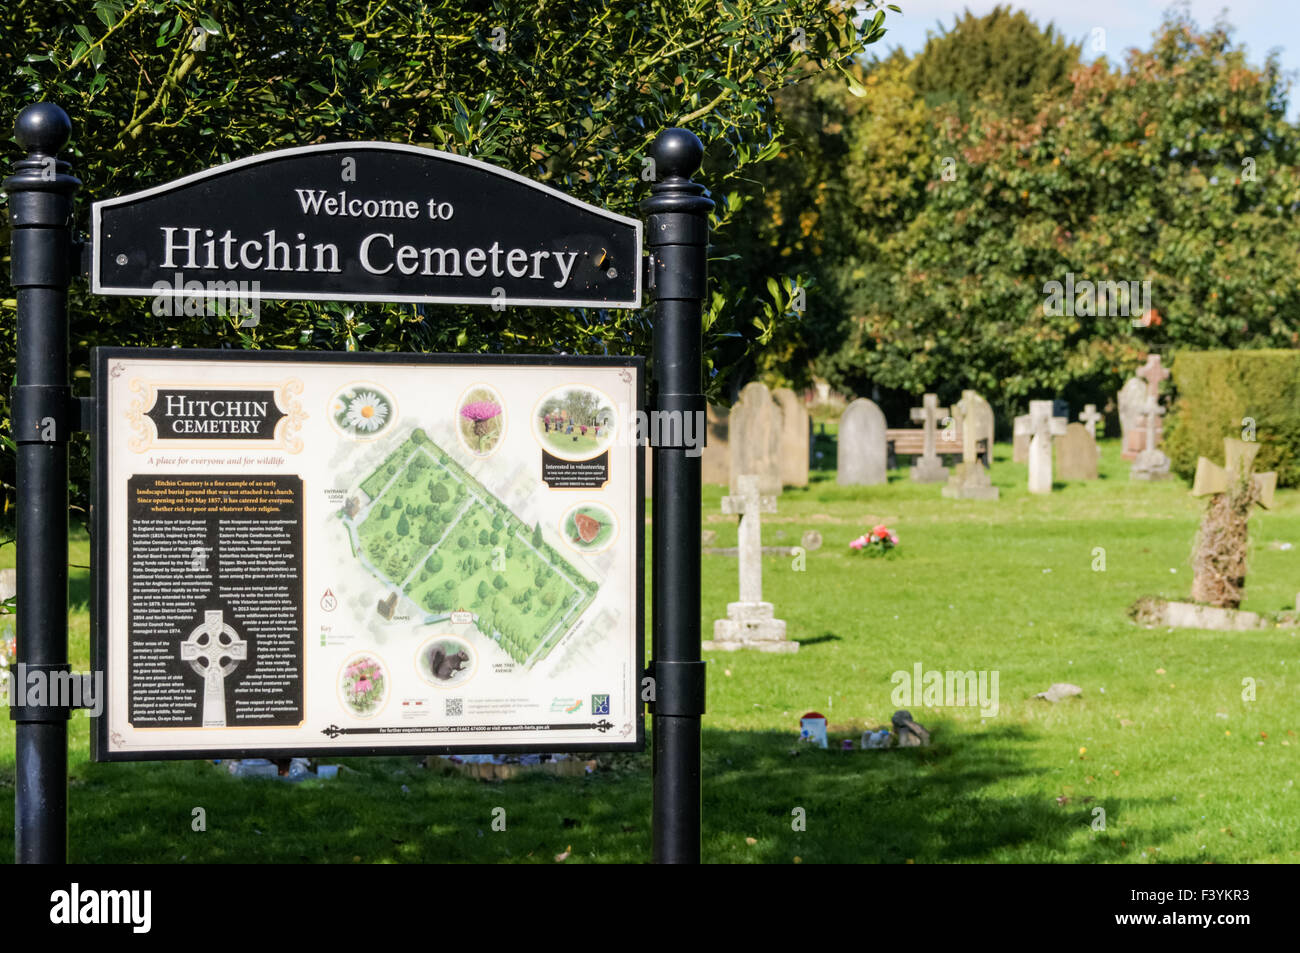 churchyard sign stockfotos churchyard sign bilder. Black Bedroom Furniture Sets. Home Design Ideas